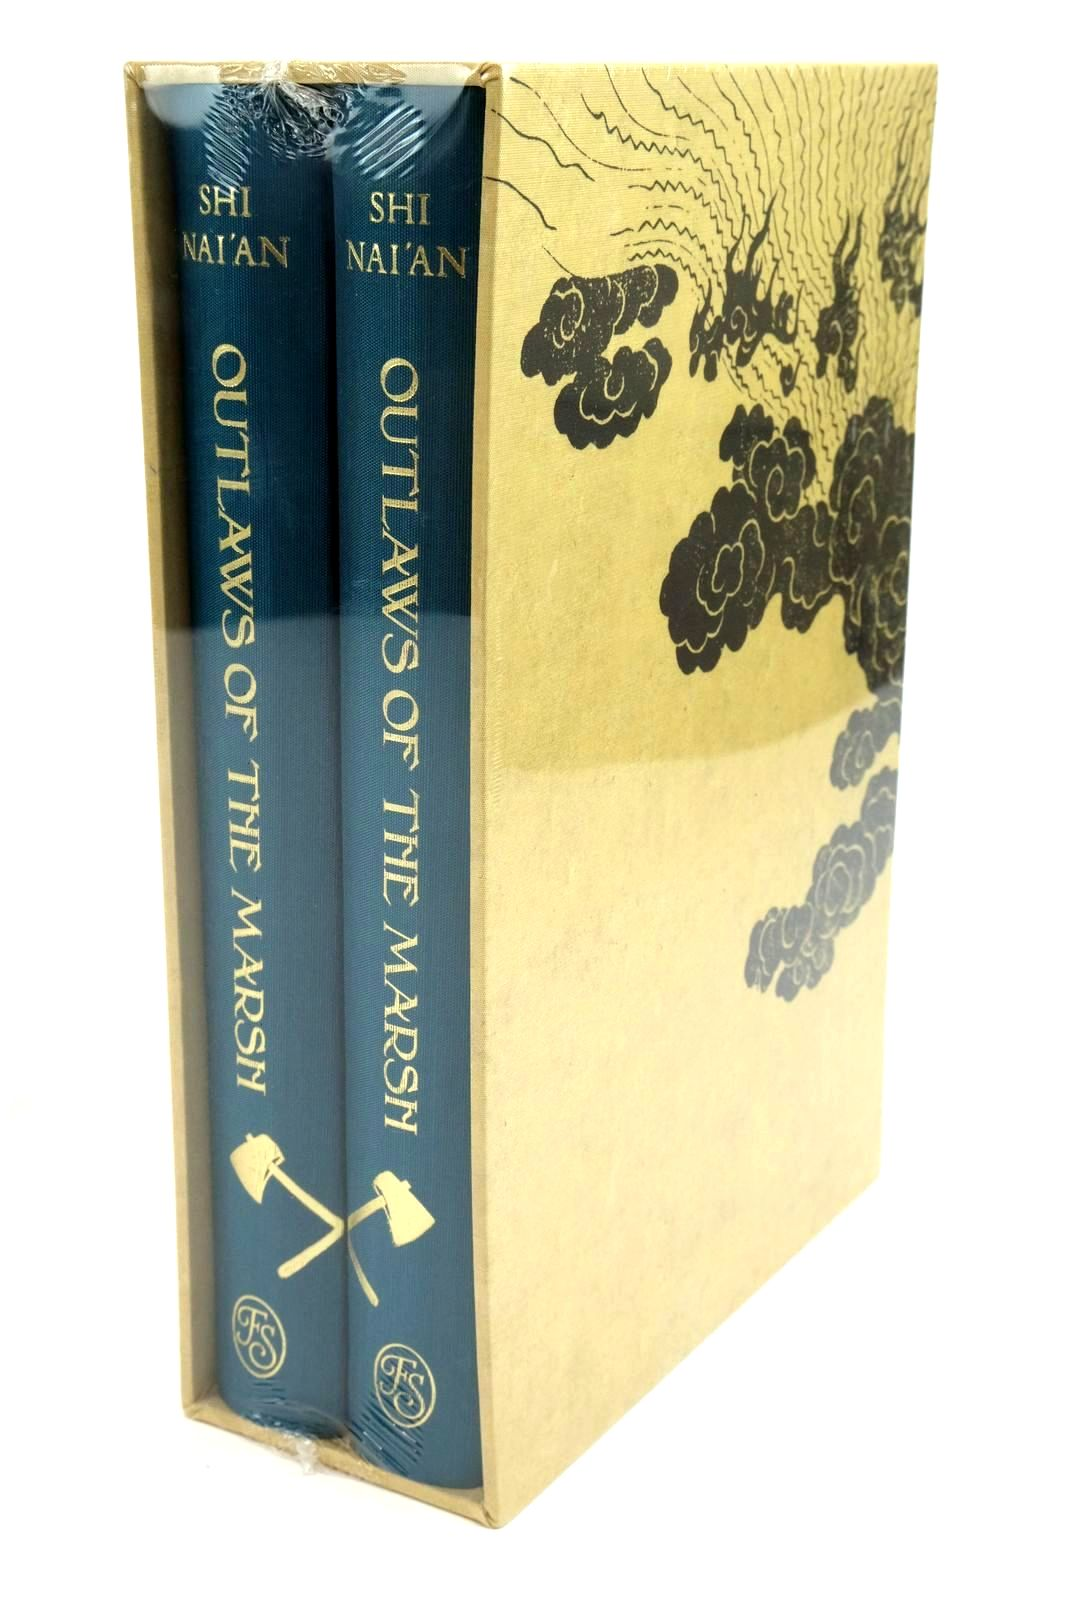 Photo of OUTLAWS OF THE MARSH - THE WATER MARGIN (2 VOLUMES) written by Nai'An, Shi published by Folio Society (STOCK CODE: 1321712)  for sale by Stella & Rose's Books